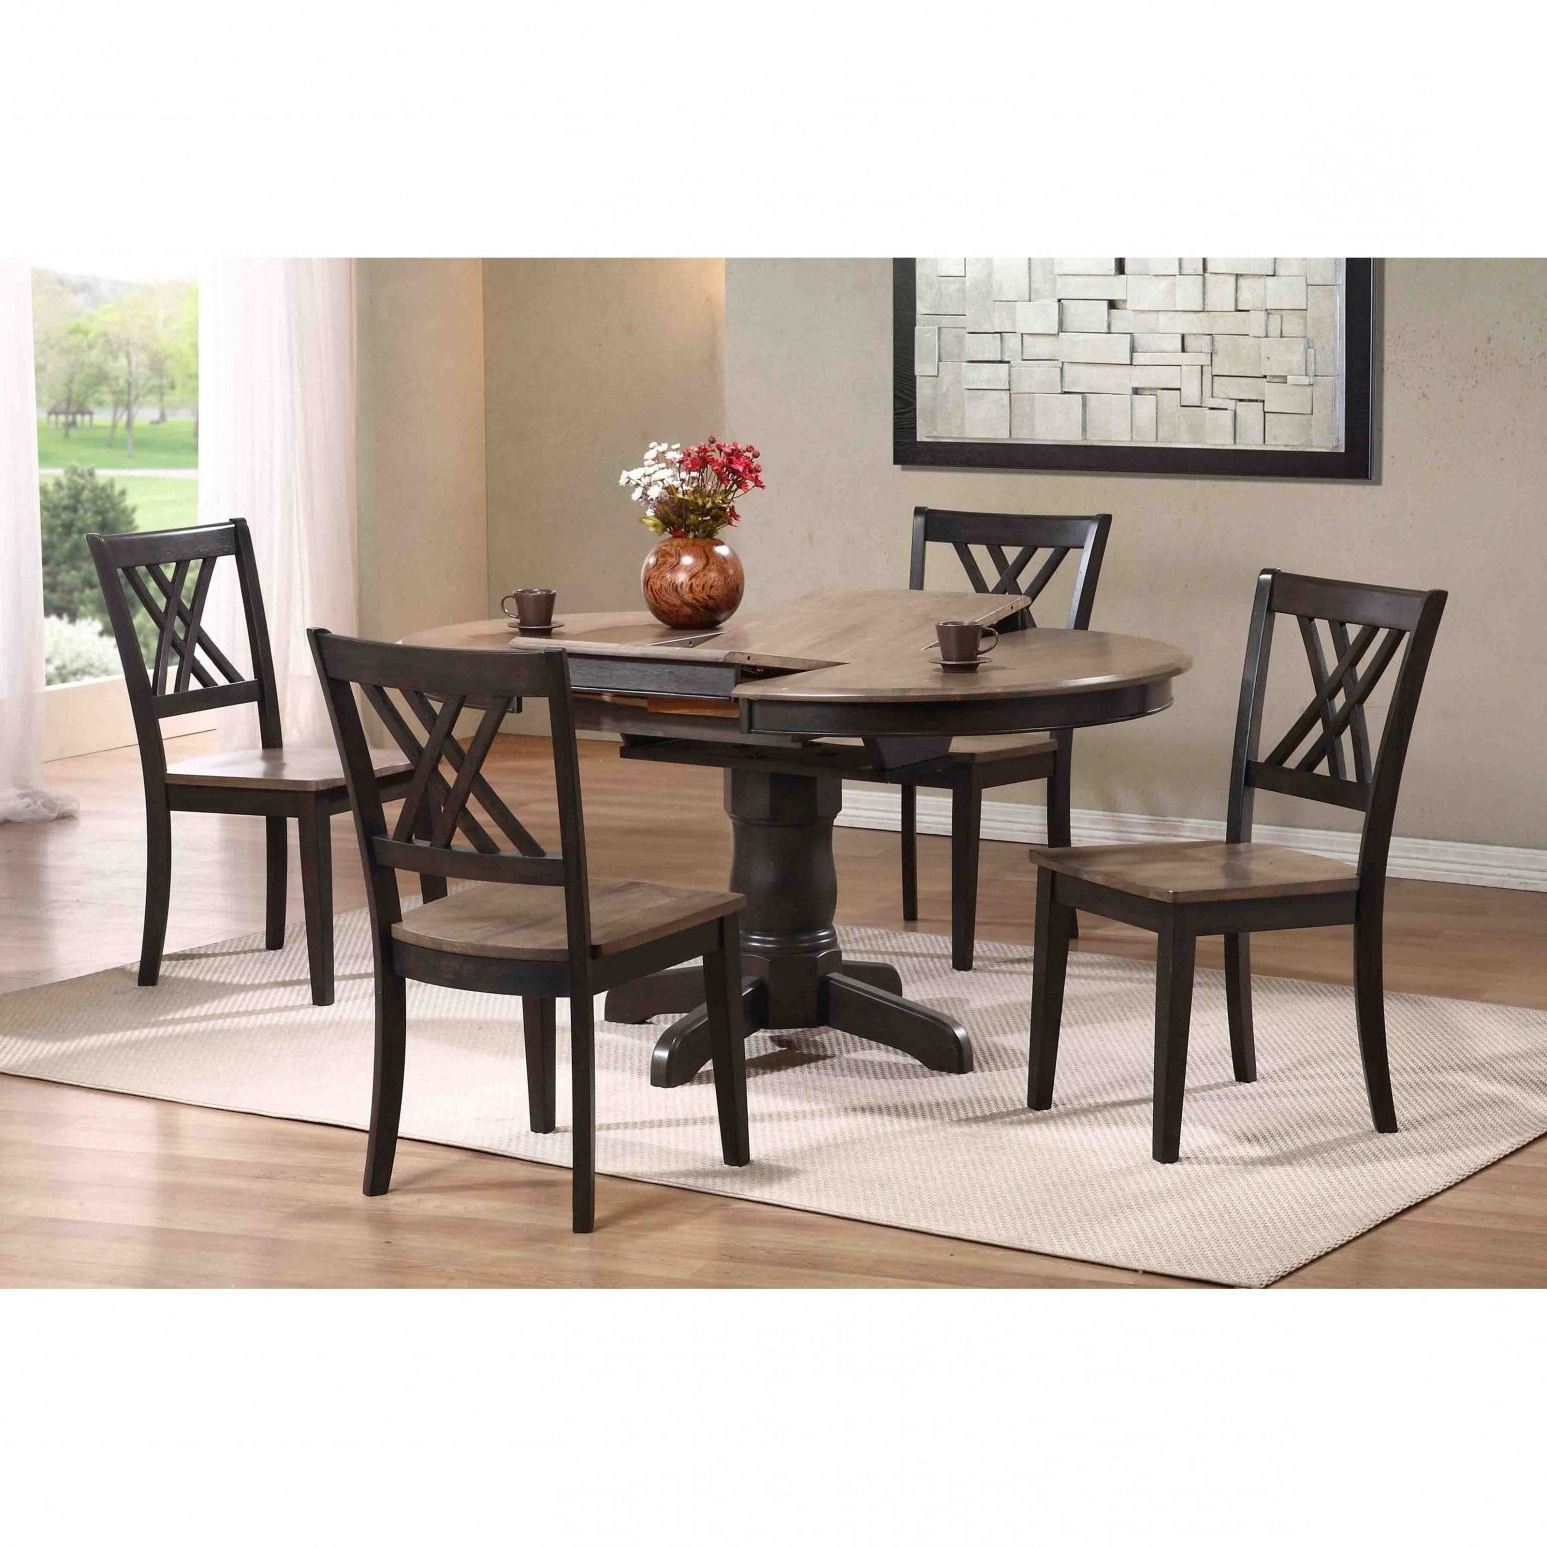 Most Up To Date 100+ Round 6 Person Dining Table – Best Office Furniture Check More Within 6 Person Round Dining Tables (View 7 of 25)